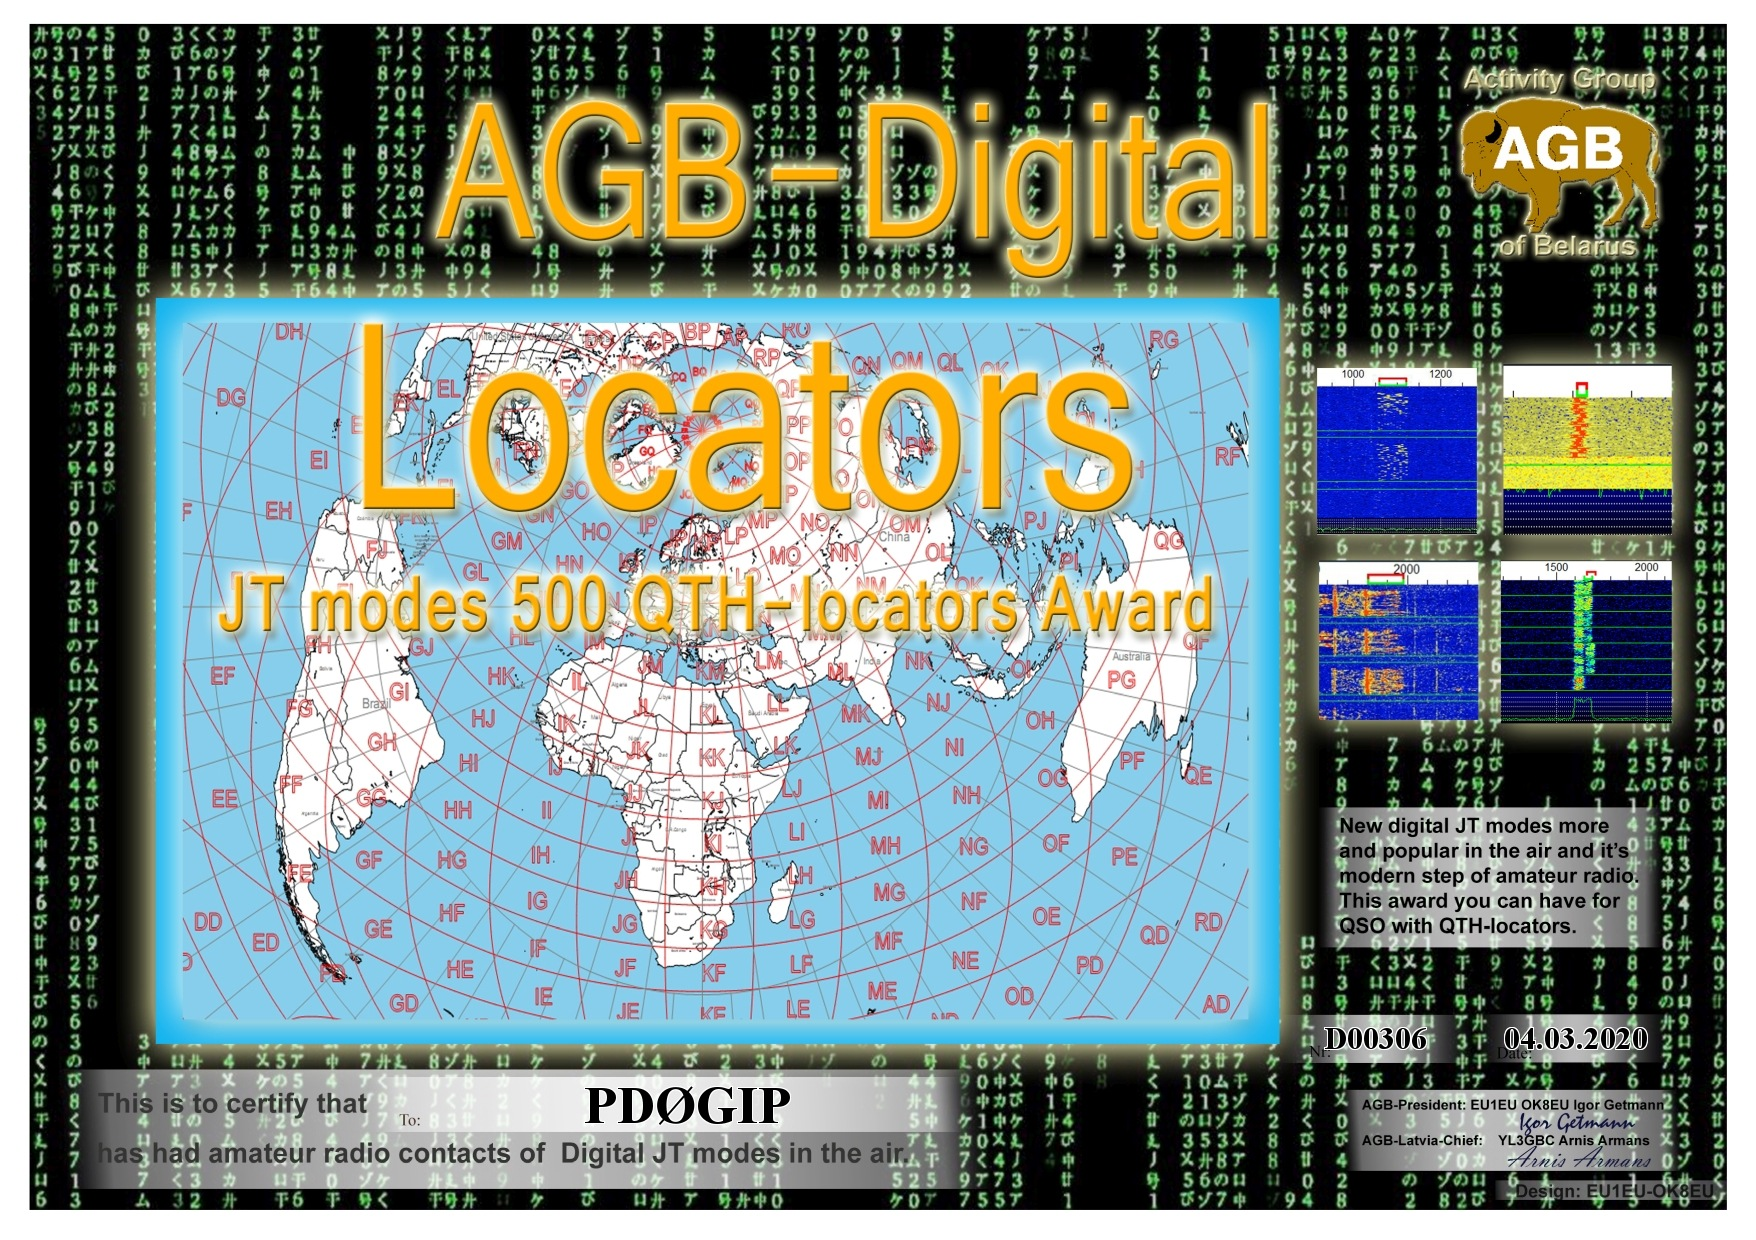 PD0GIP LOCATORS BASIC 500 AGB